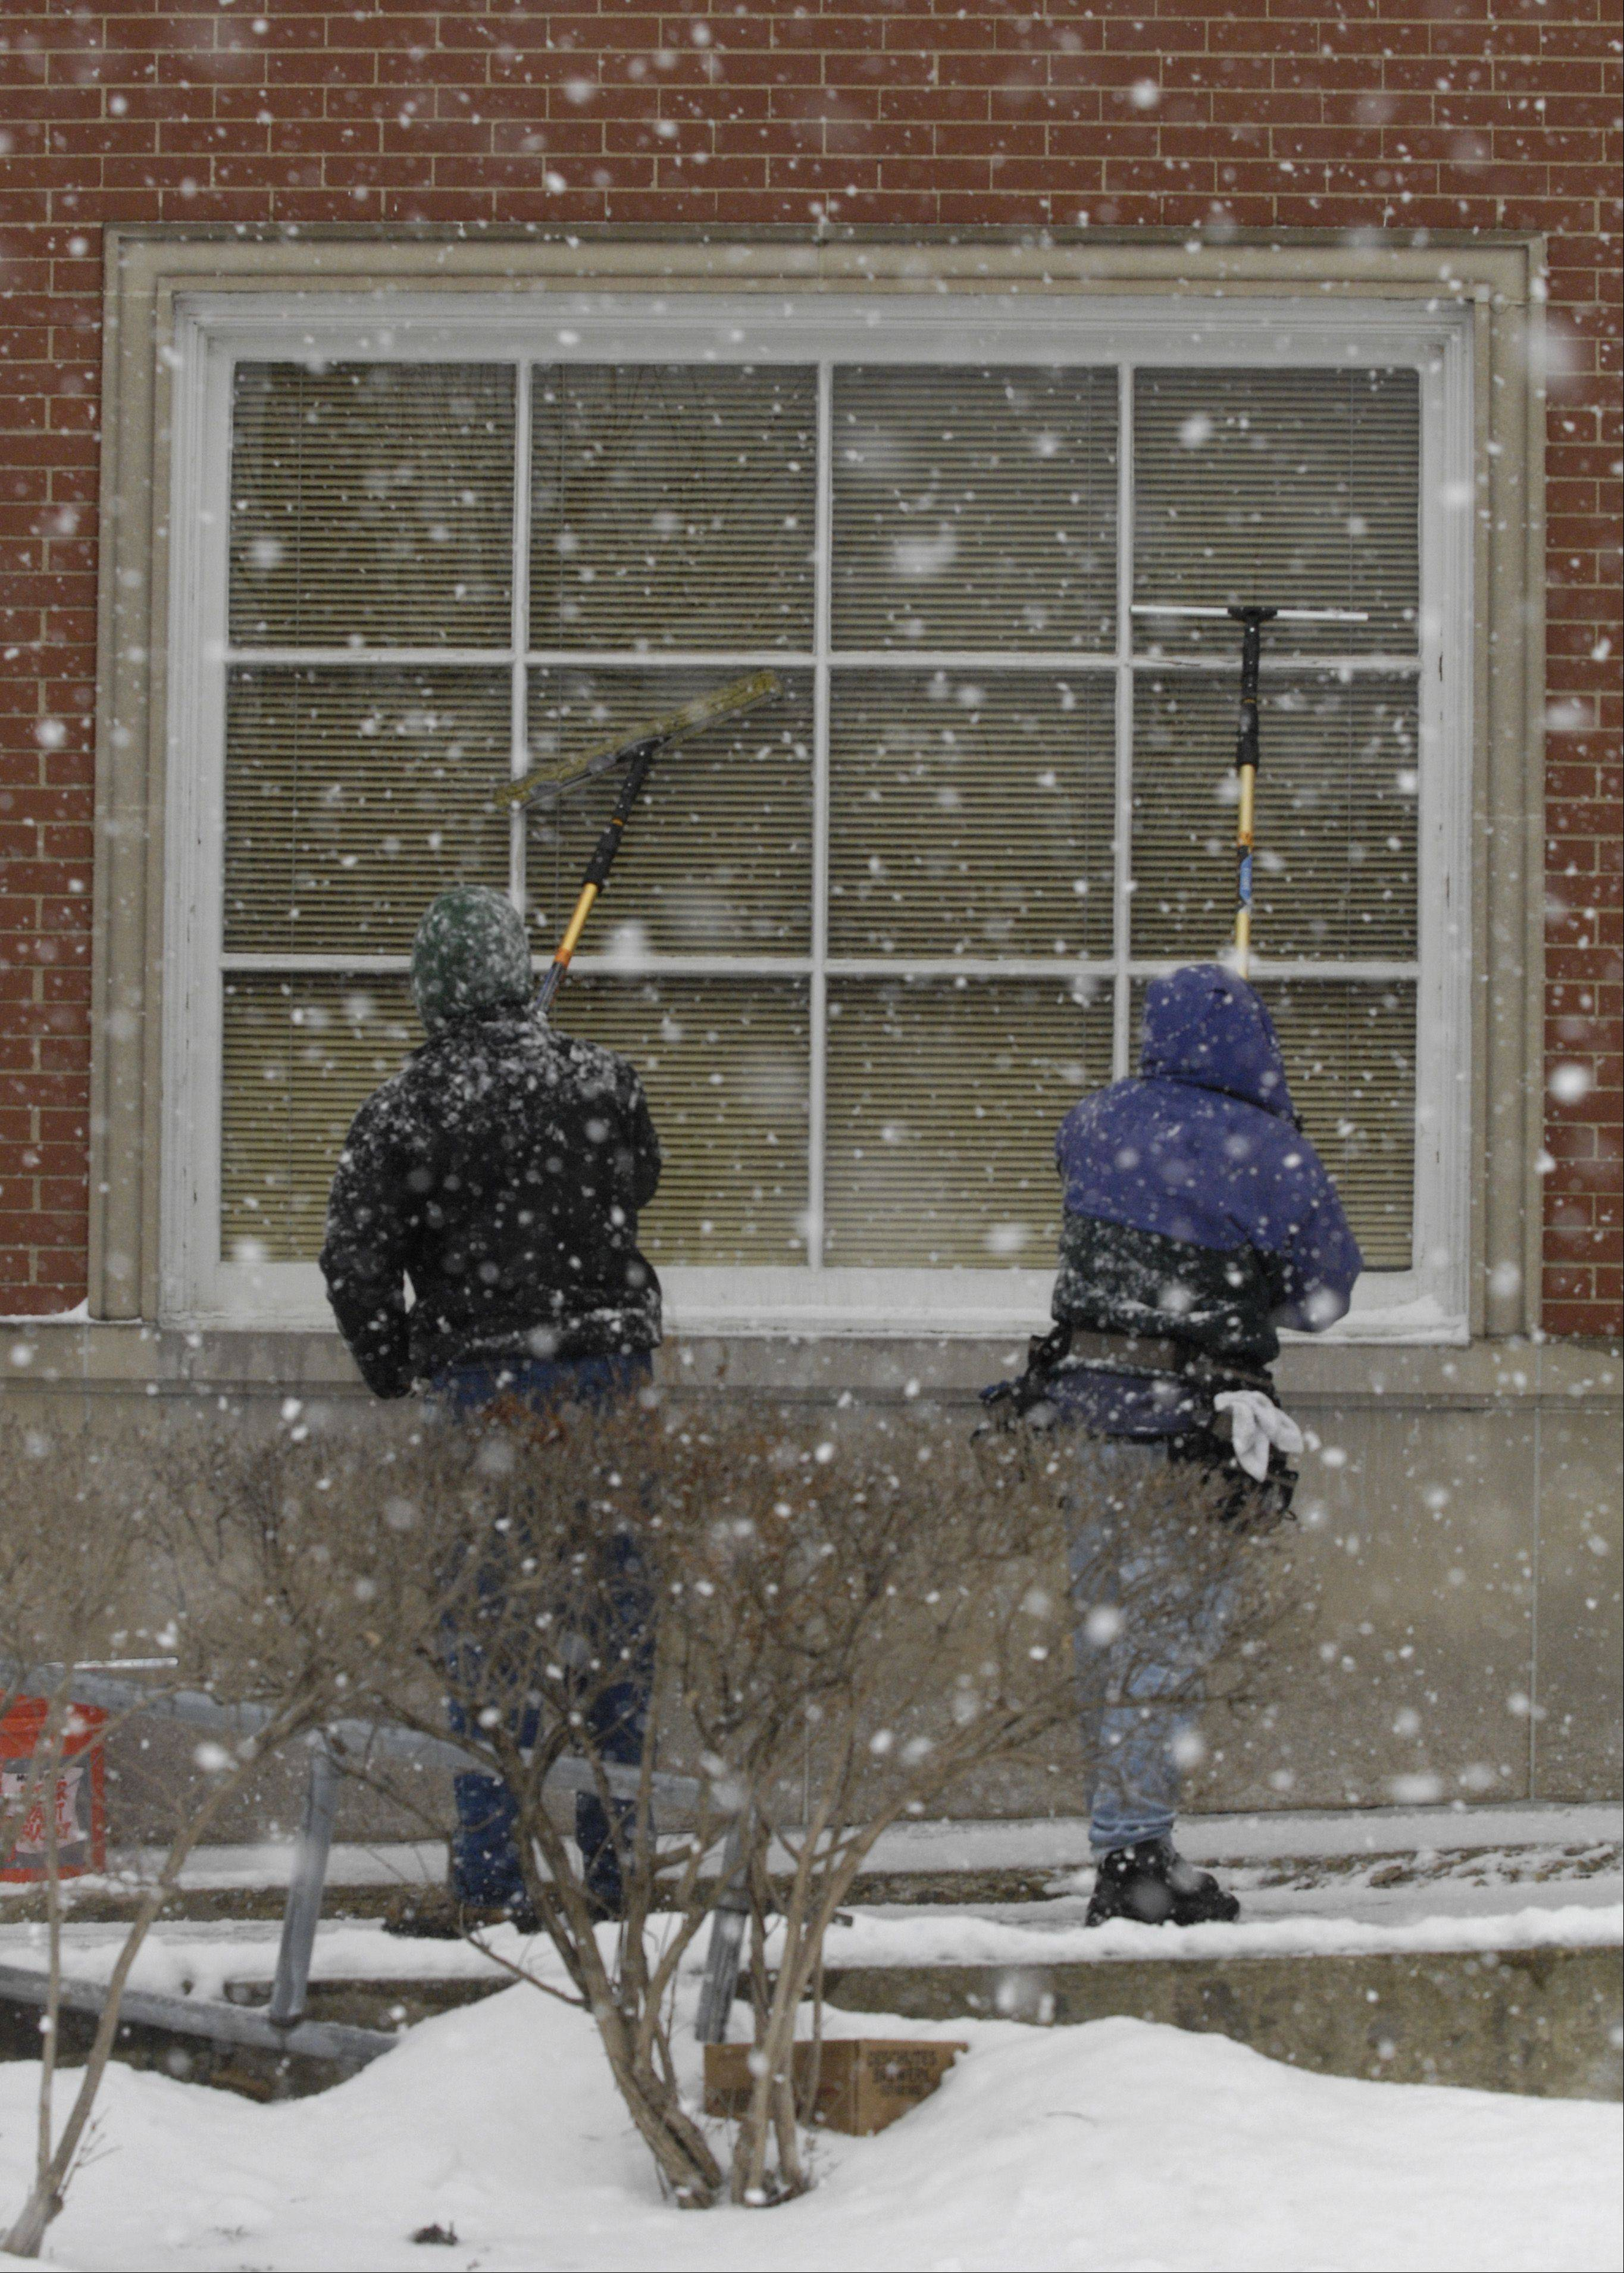 Luke Ellefson and Tim O'Malley of Elk Grove wash the windows the Citibank building in Glen Ellyn as the blowing snow and sleet start up Tuesday morning.